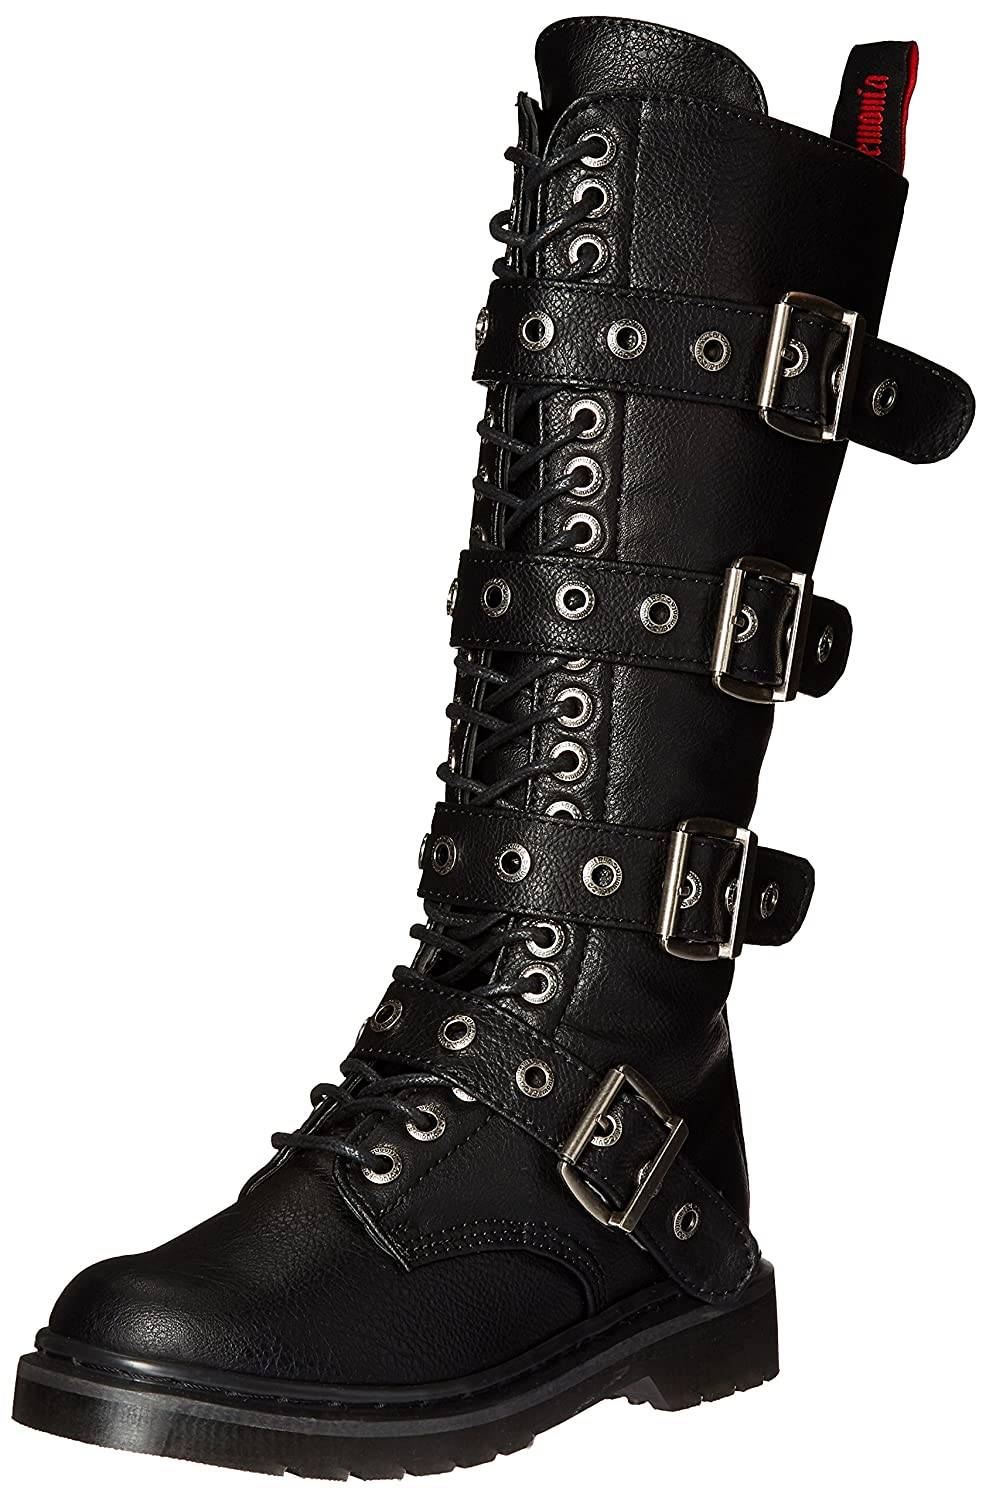 Demonia Women's Riv404/bpu Boot B0193A50SY 7 B(M) US|Black Vegan Leather